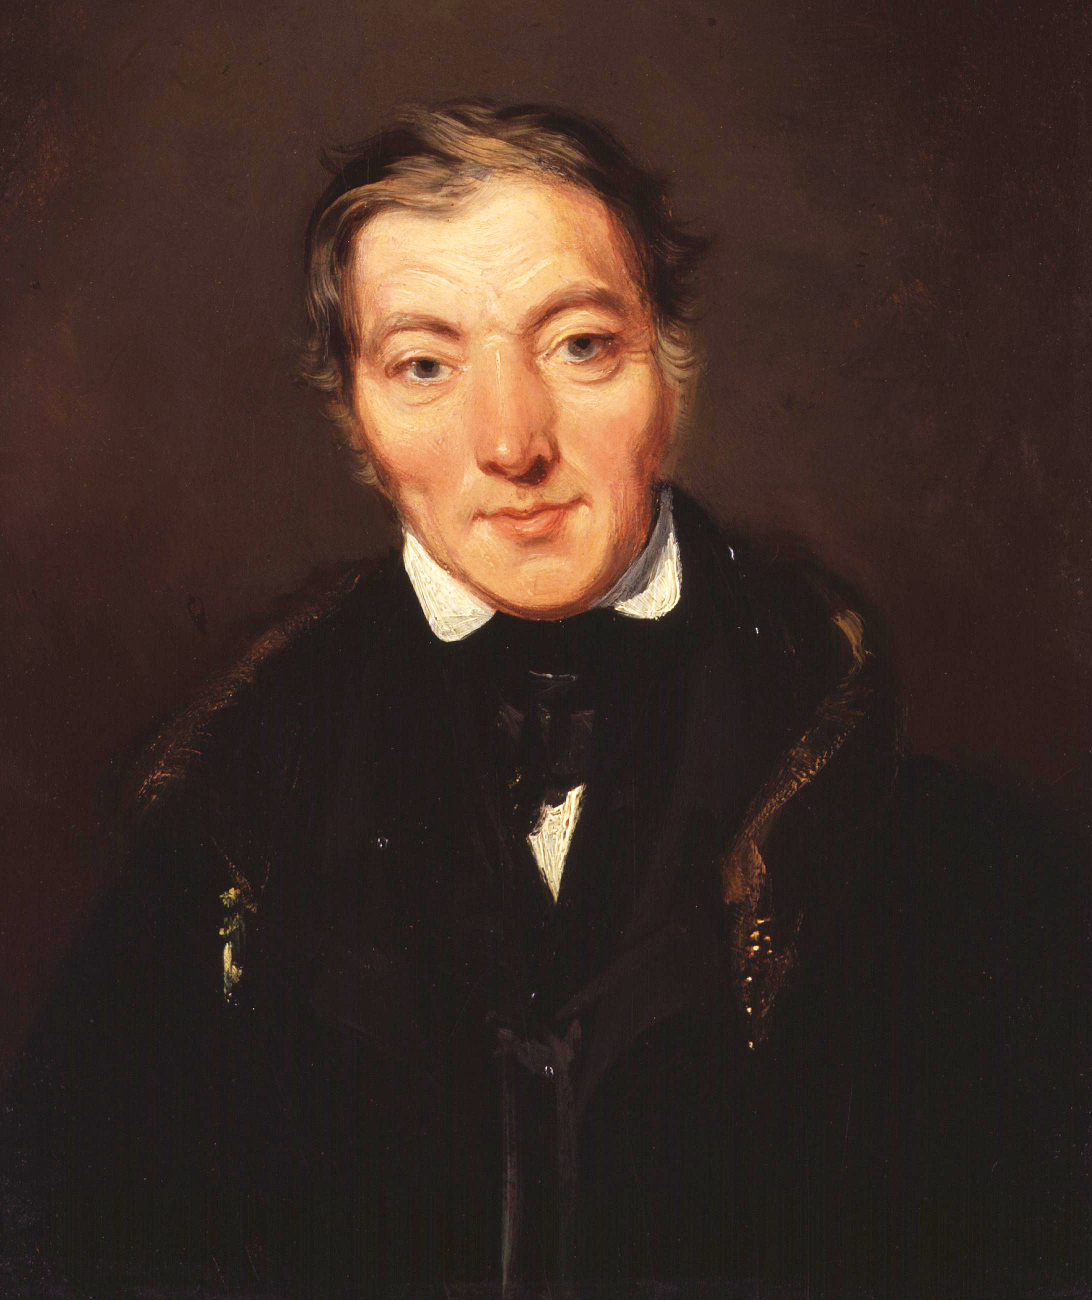 Portrait of Robert Owen